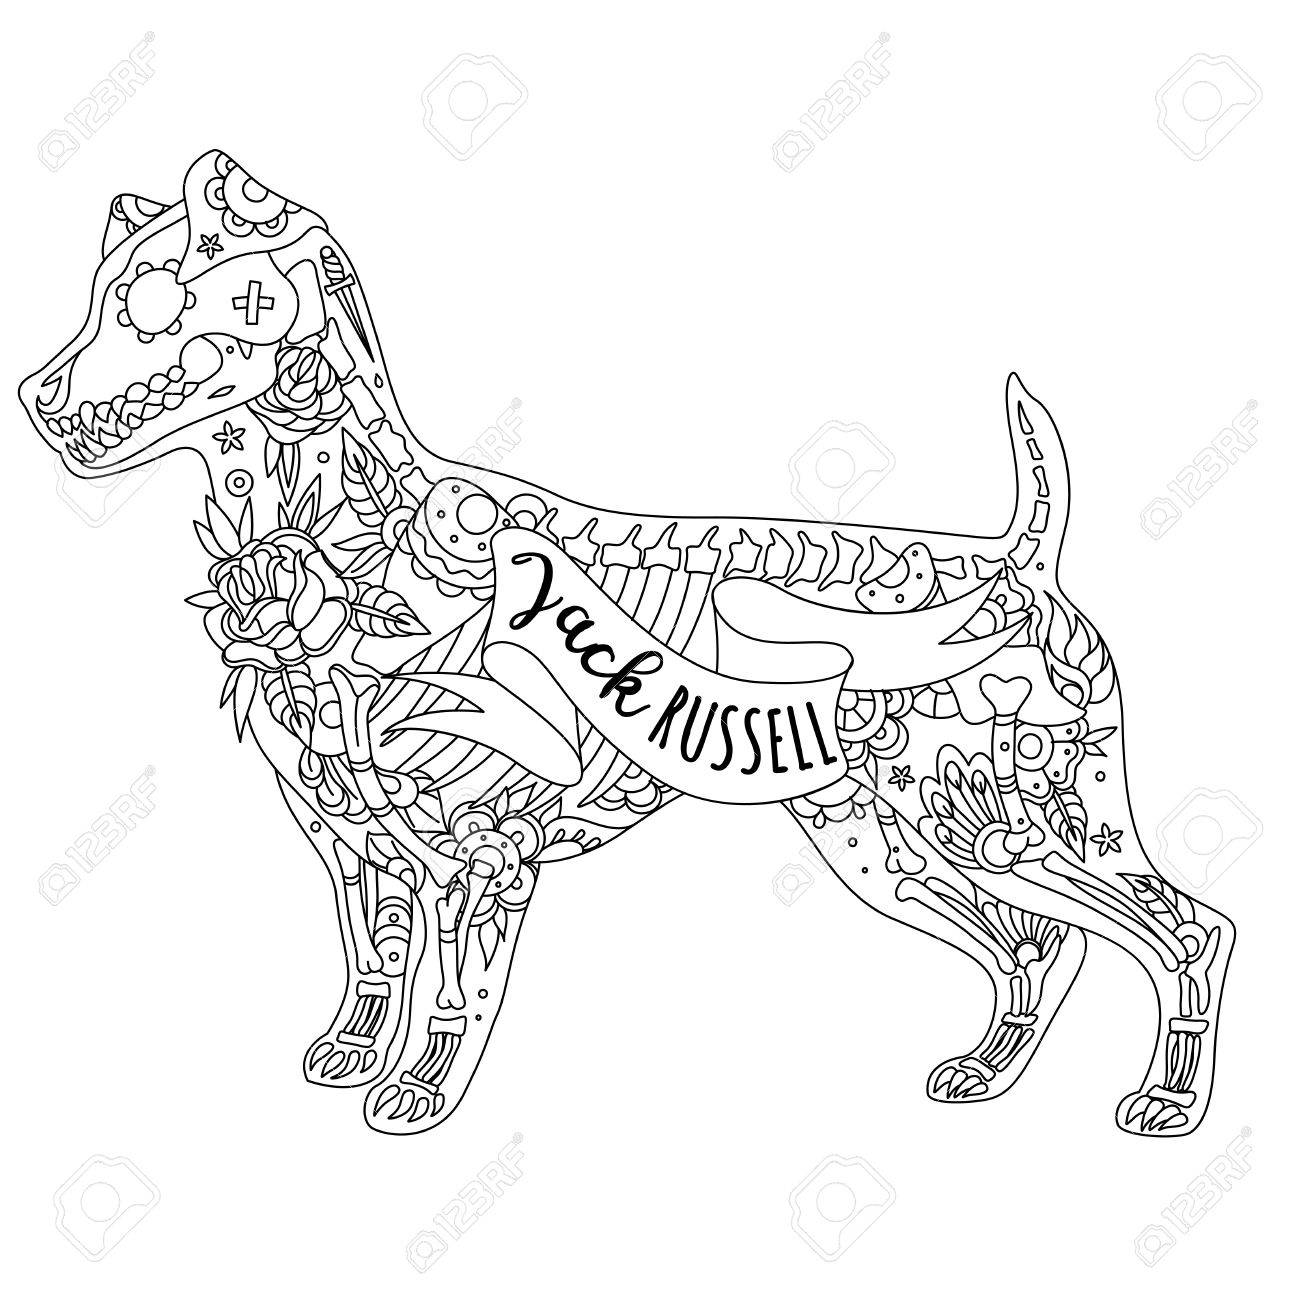 Dog Skeleton Drawing At Getdrawings